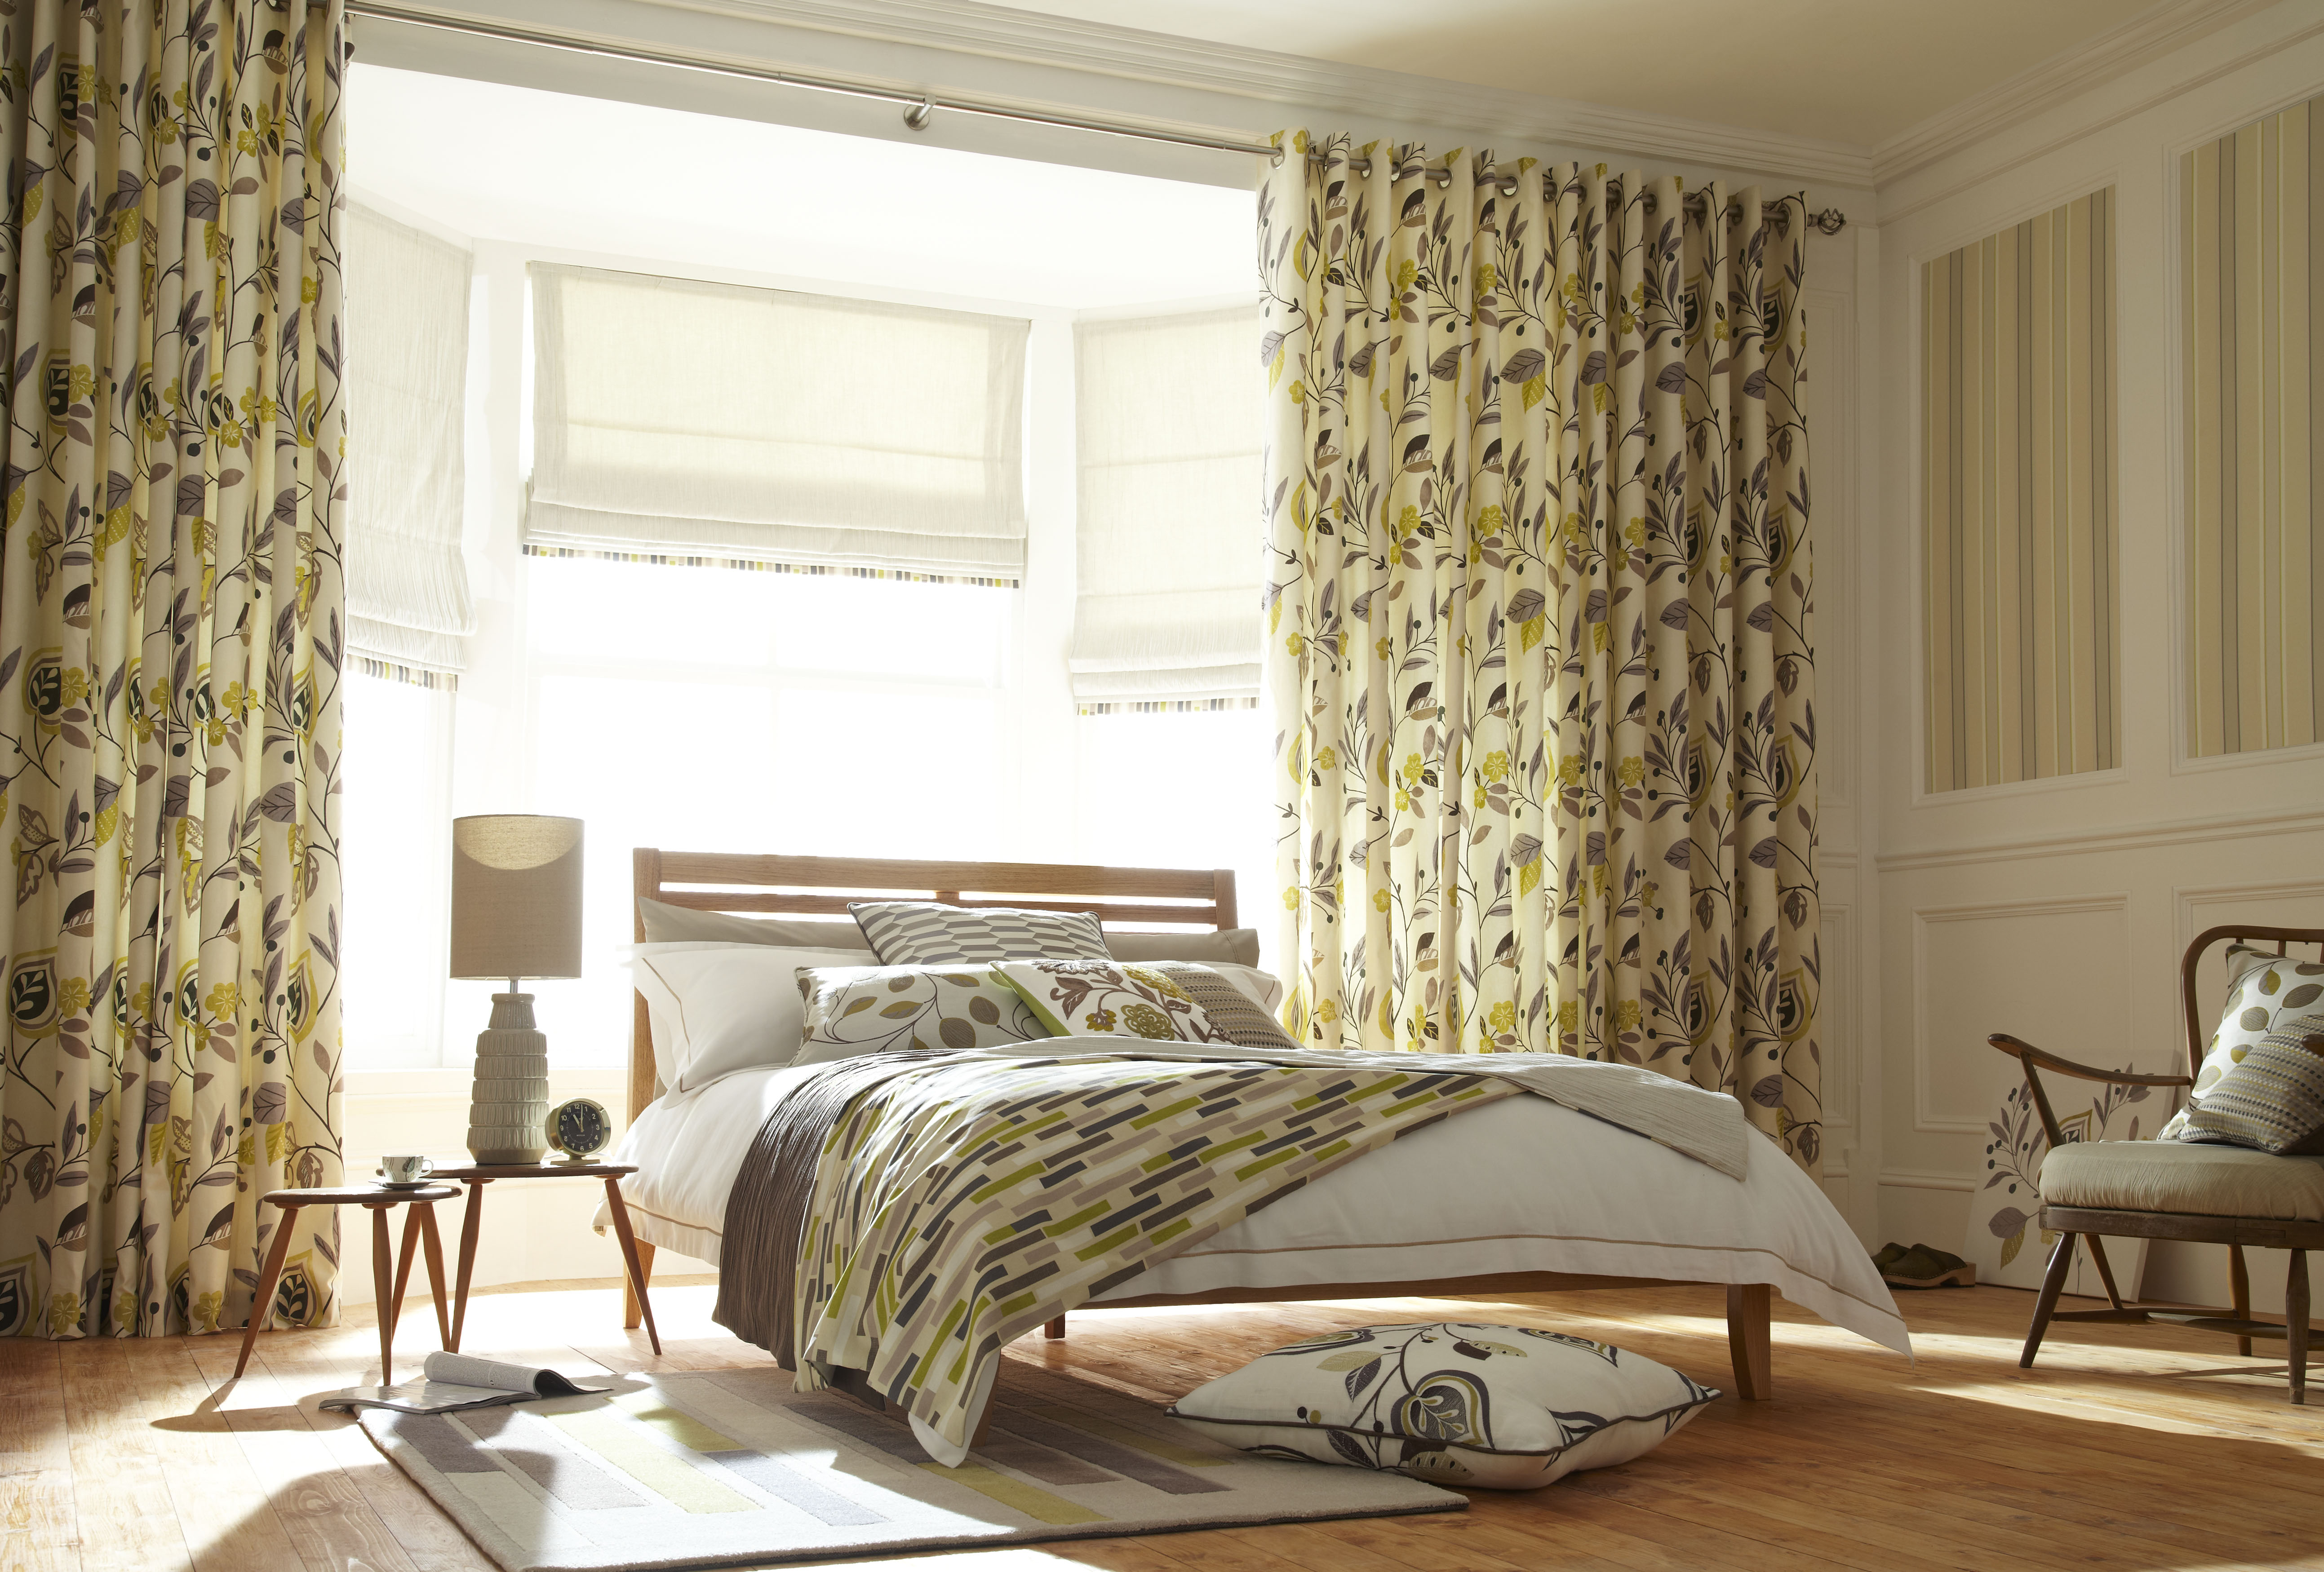 Interior Design Curtains interior design curtains and blinds | home design